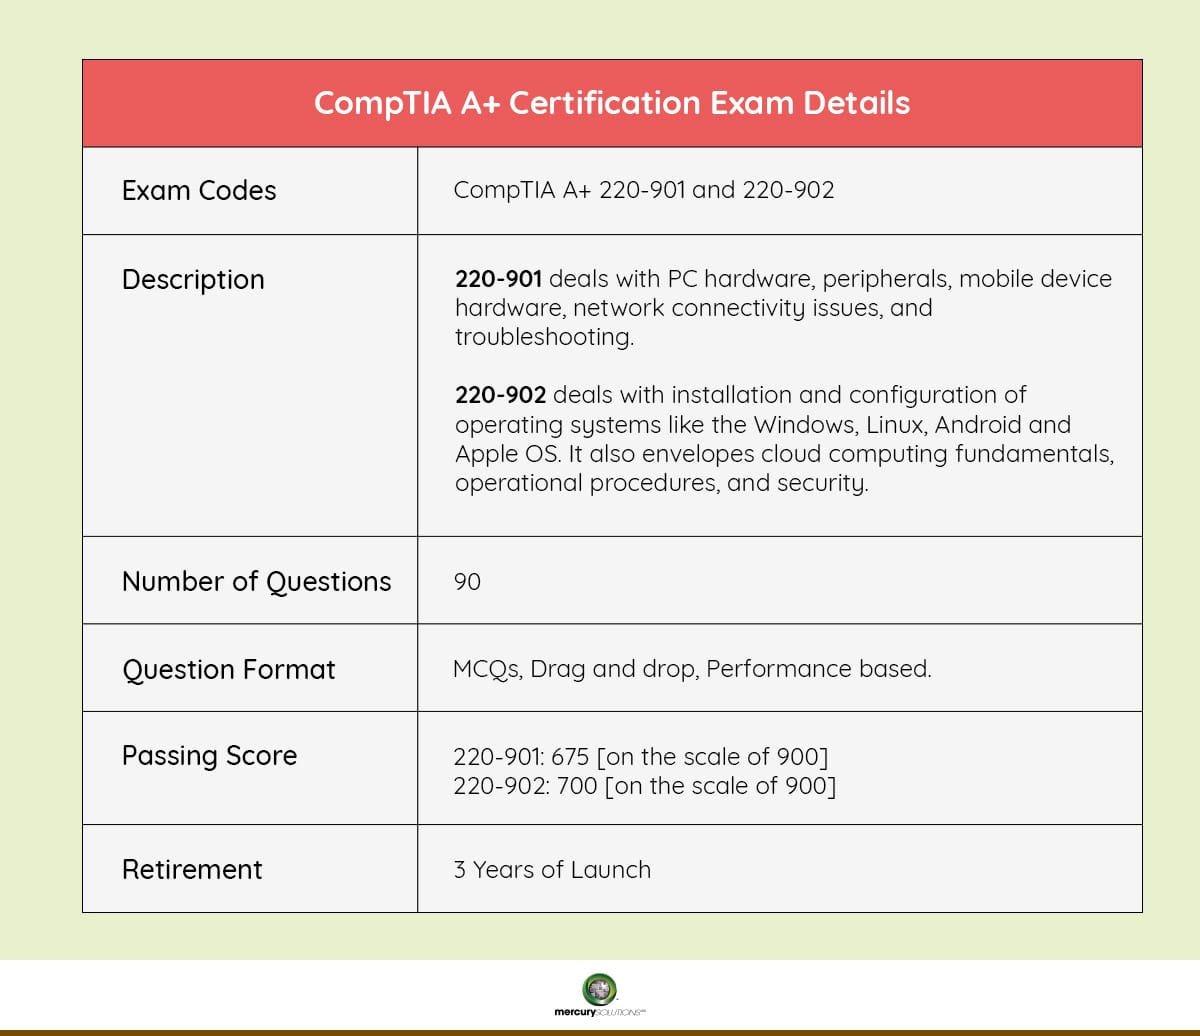 CompTIA A+ Certification Exam Details